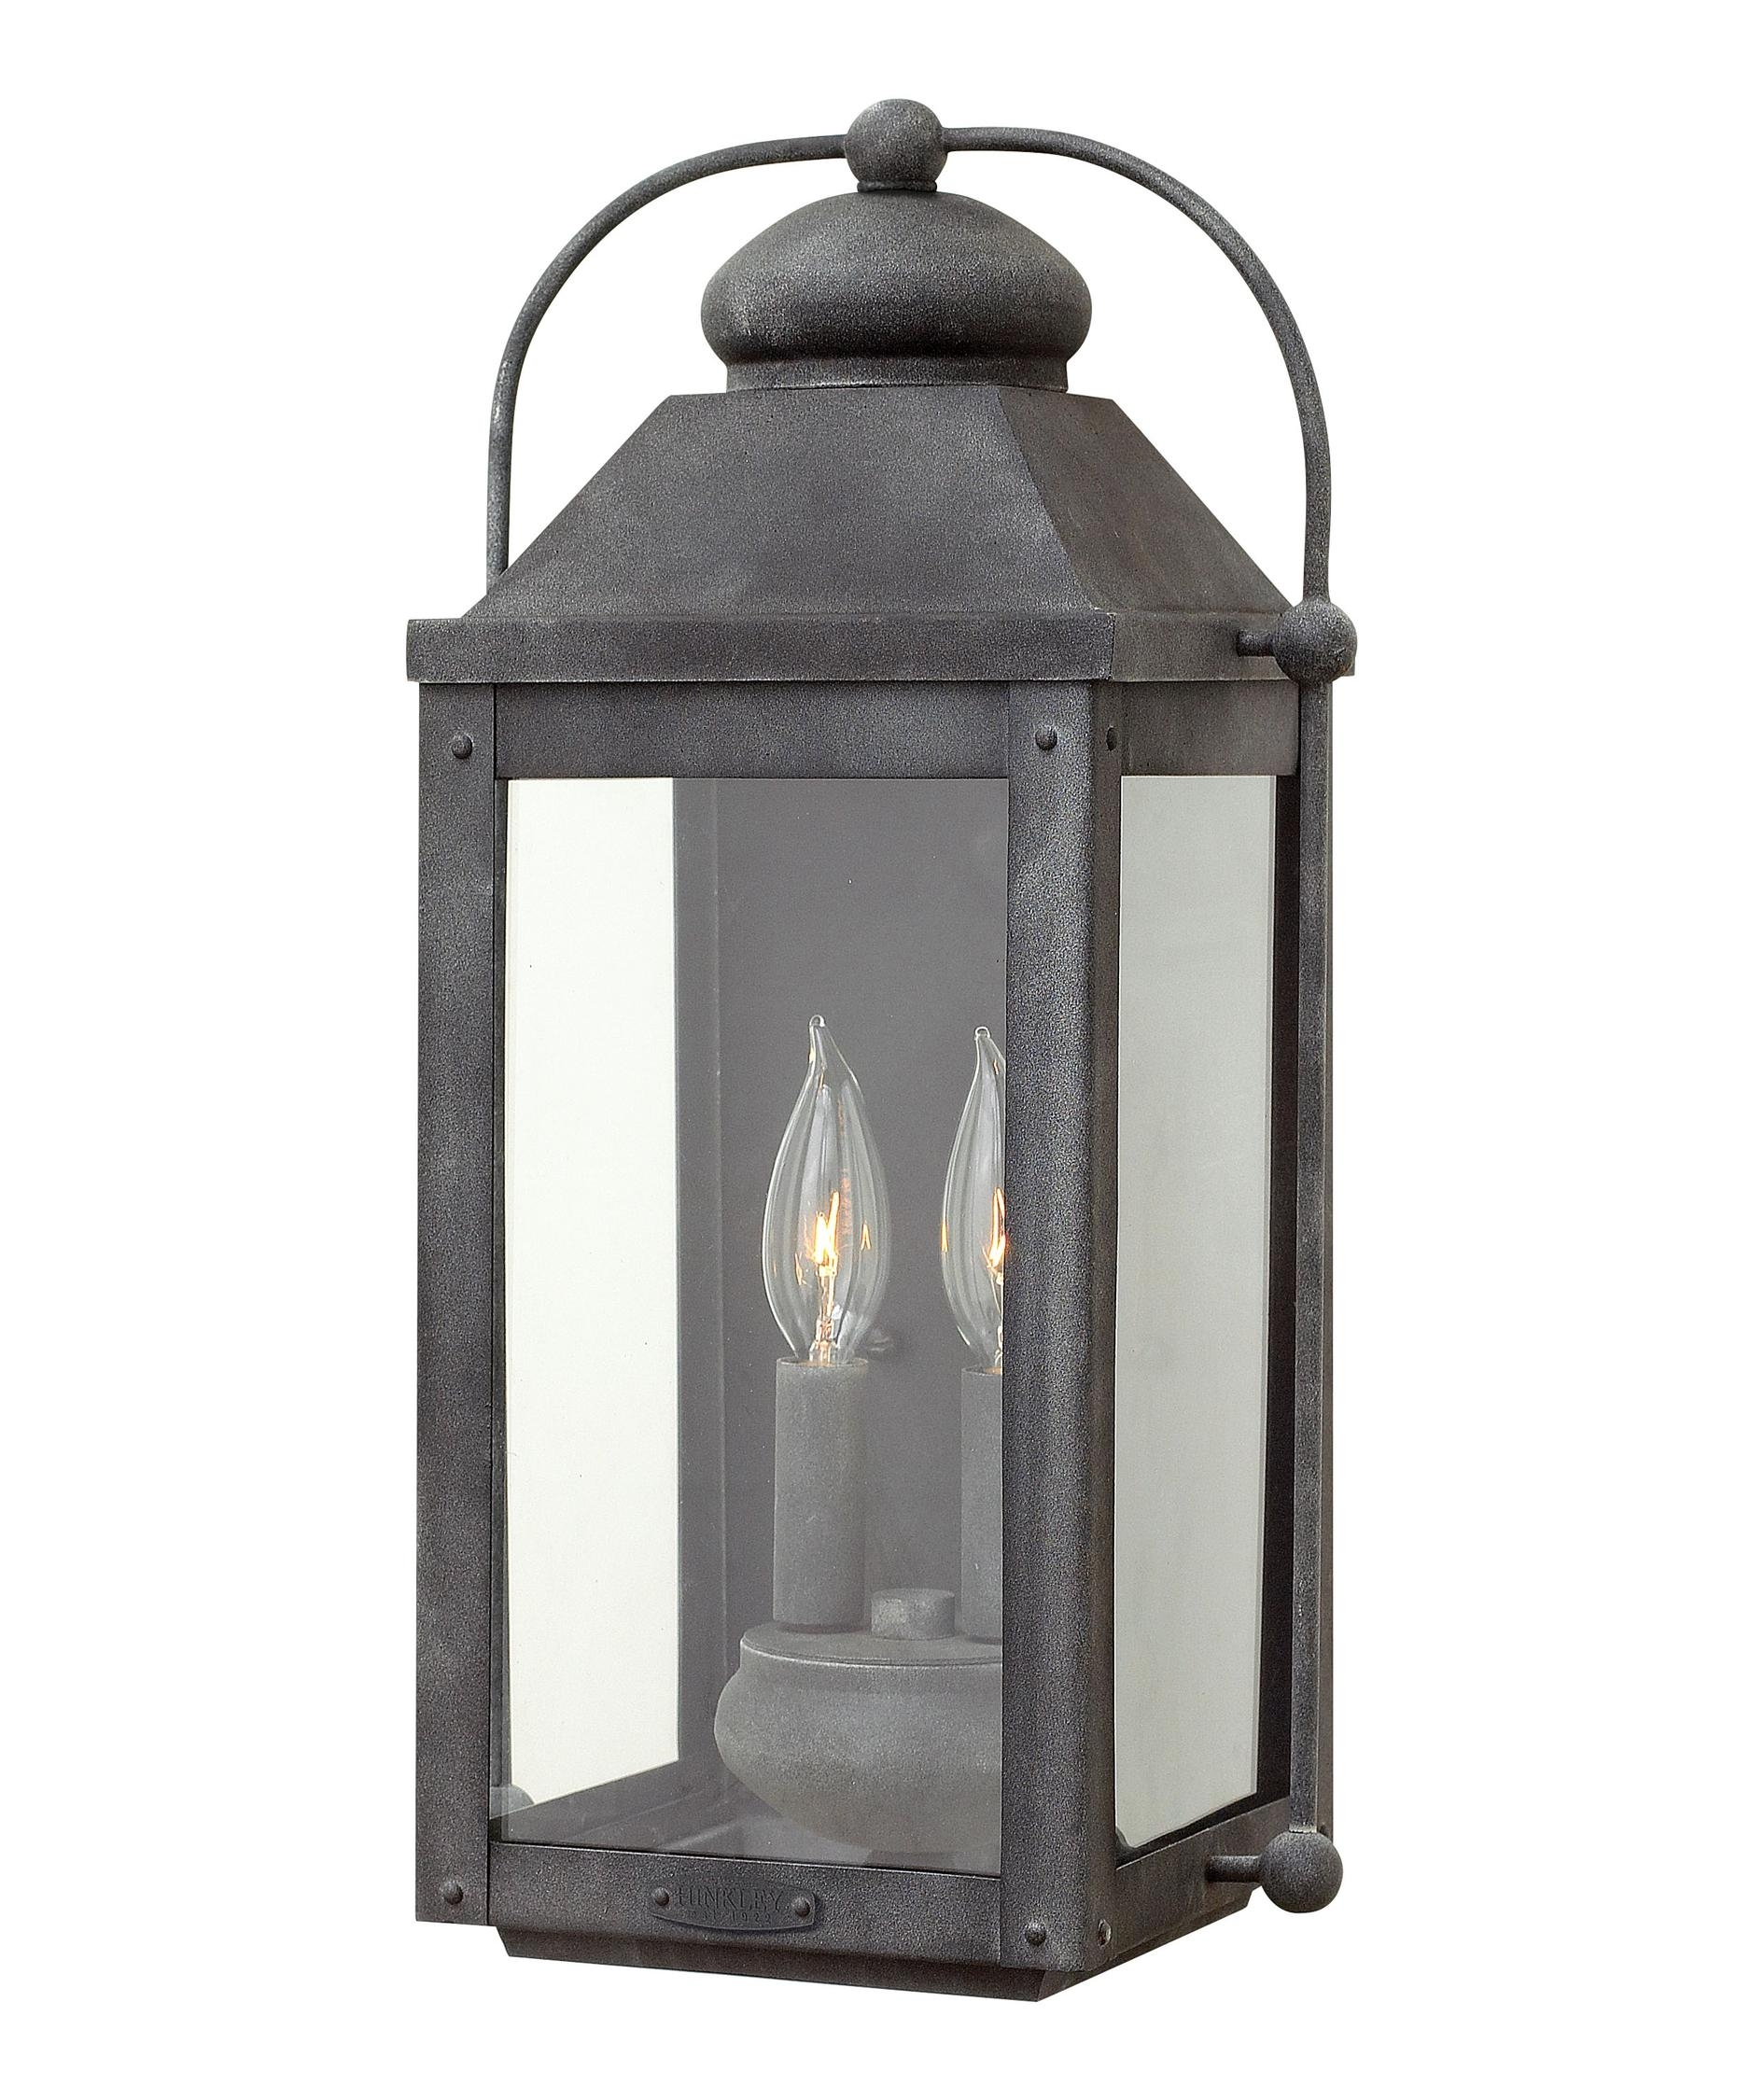 Hinkley Lighting 1854 Anchorage 9 Inch Wide 2 Light Outdoor Wall In Modern Latern Hinkley Lighting (View 11 of 15)